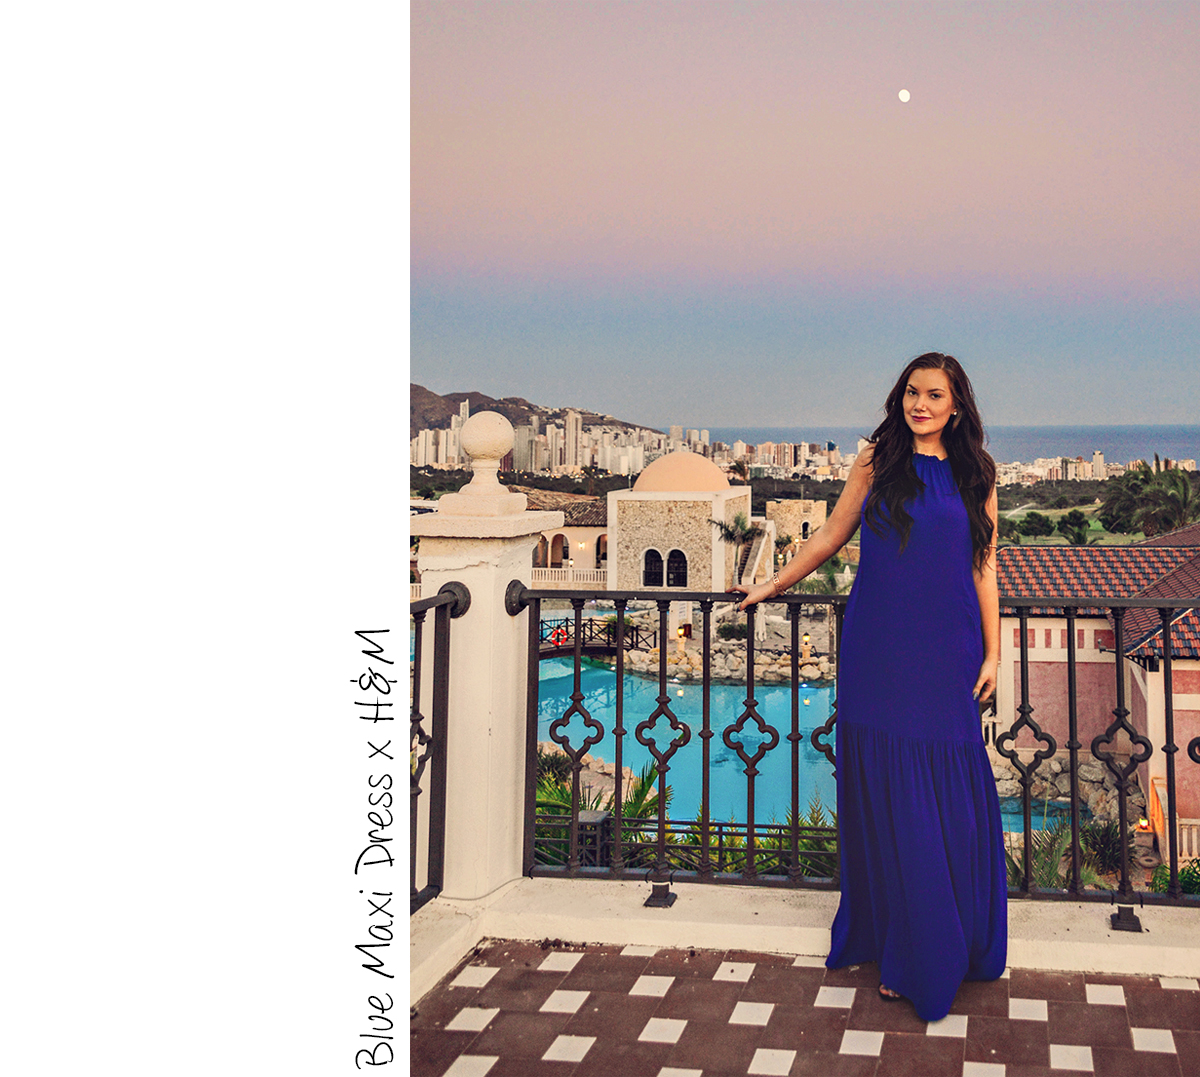 Blue Maxi Dress in Benidorm